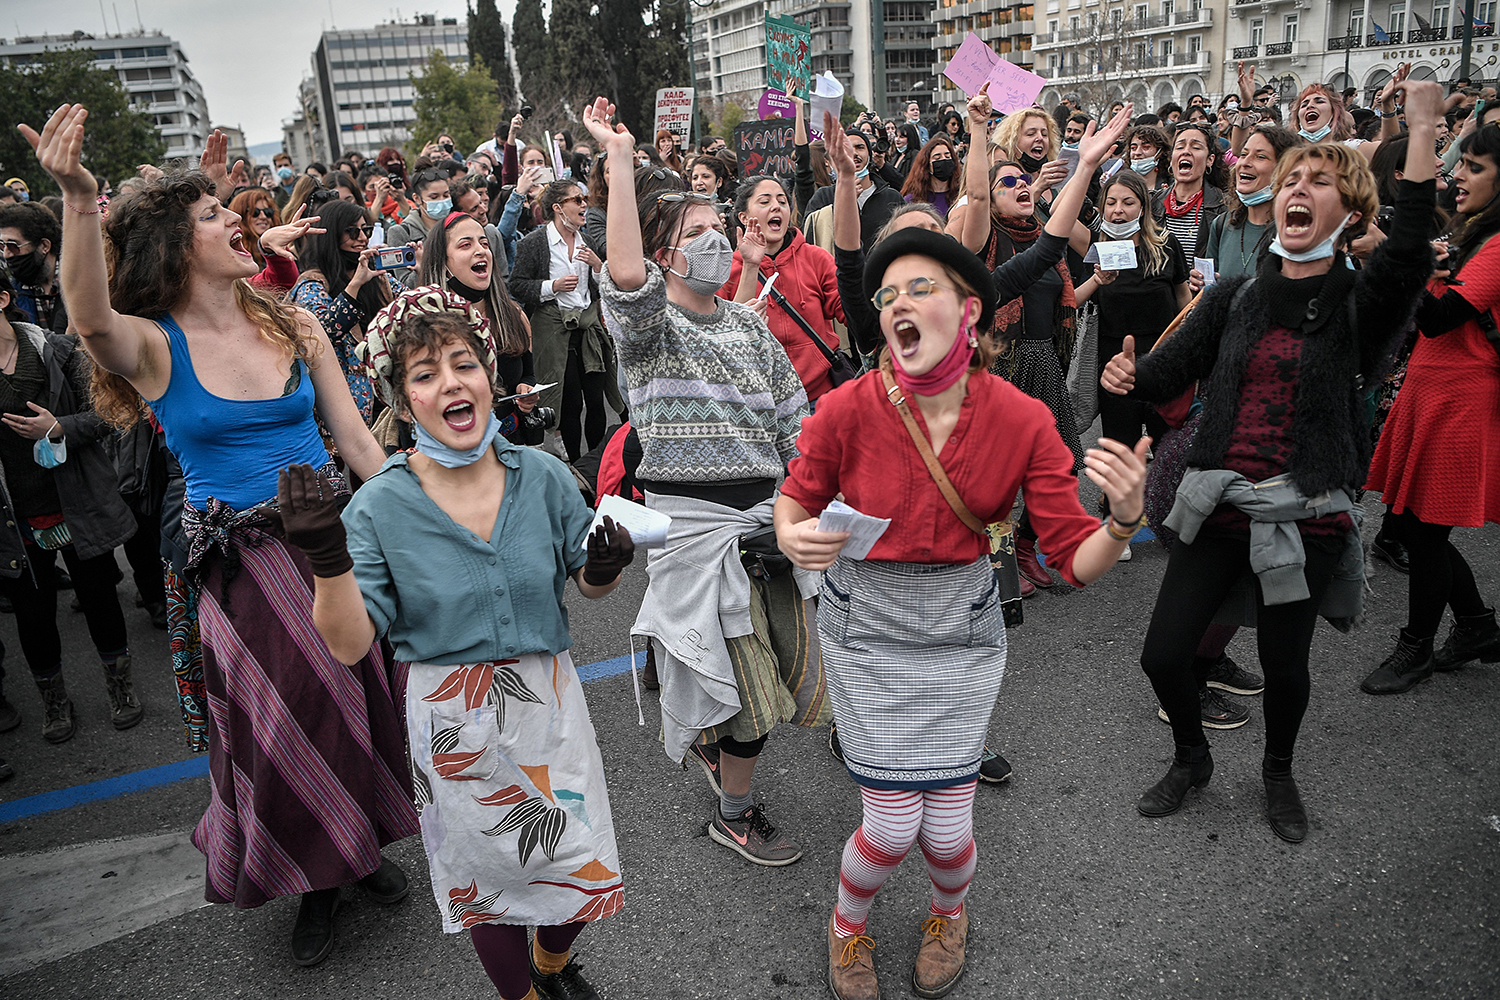 Women chant a satirical song in front of the Greek parliament in Athens during a demonstration on International Women's Day, March 8. LOUISA GOULIAMAKI/AFP via Getty Images